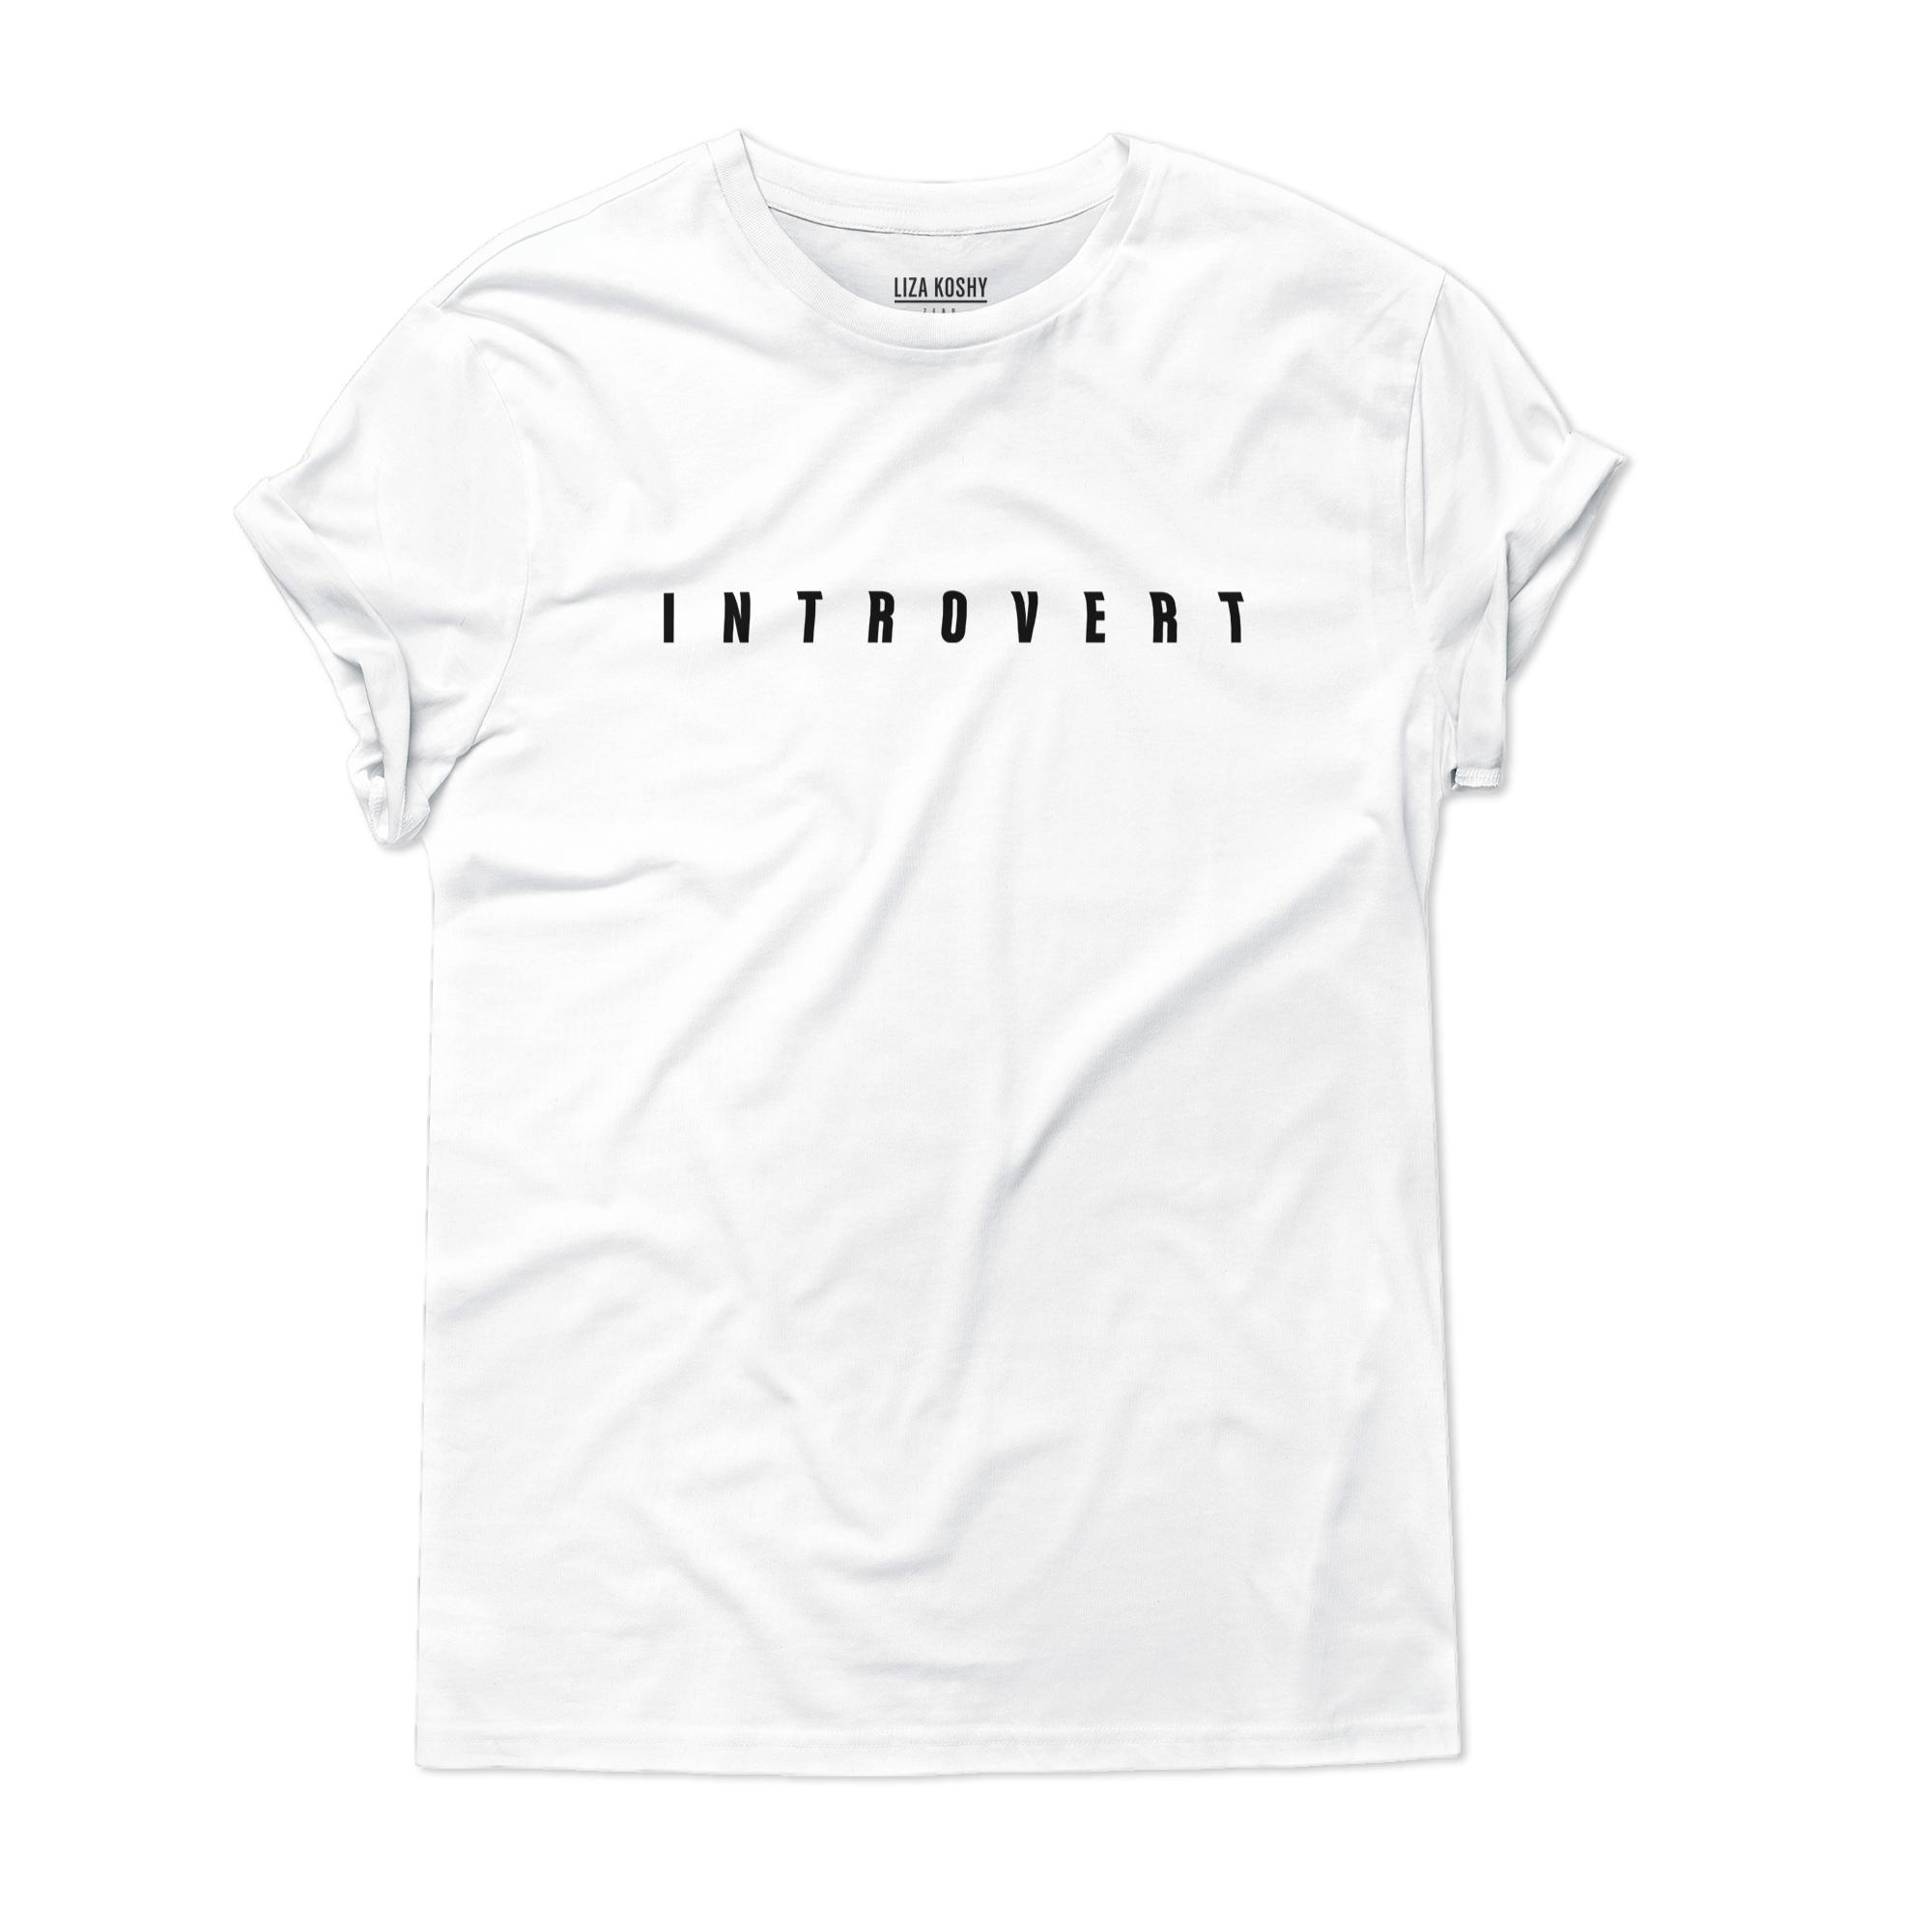 liza koshy t-shirt merch